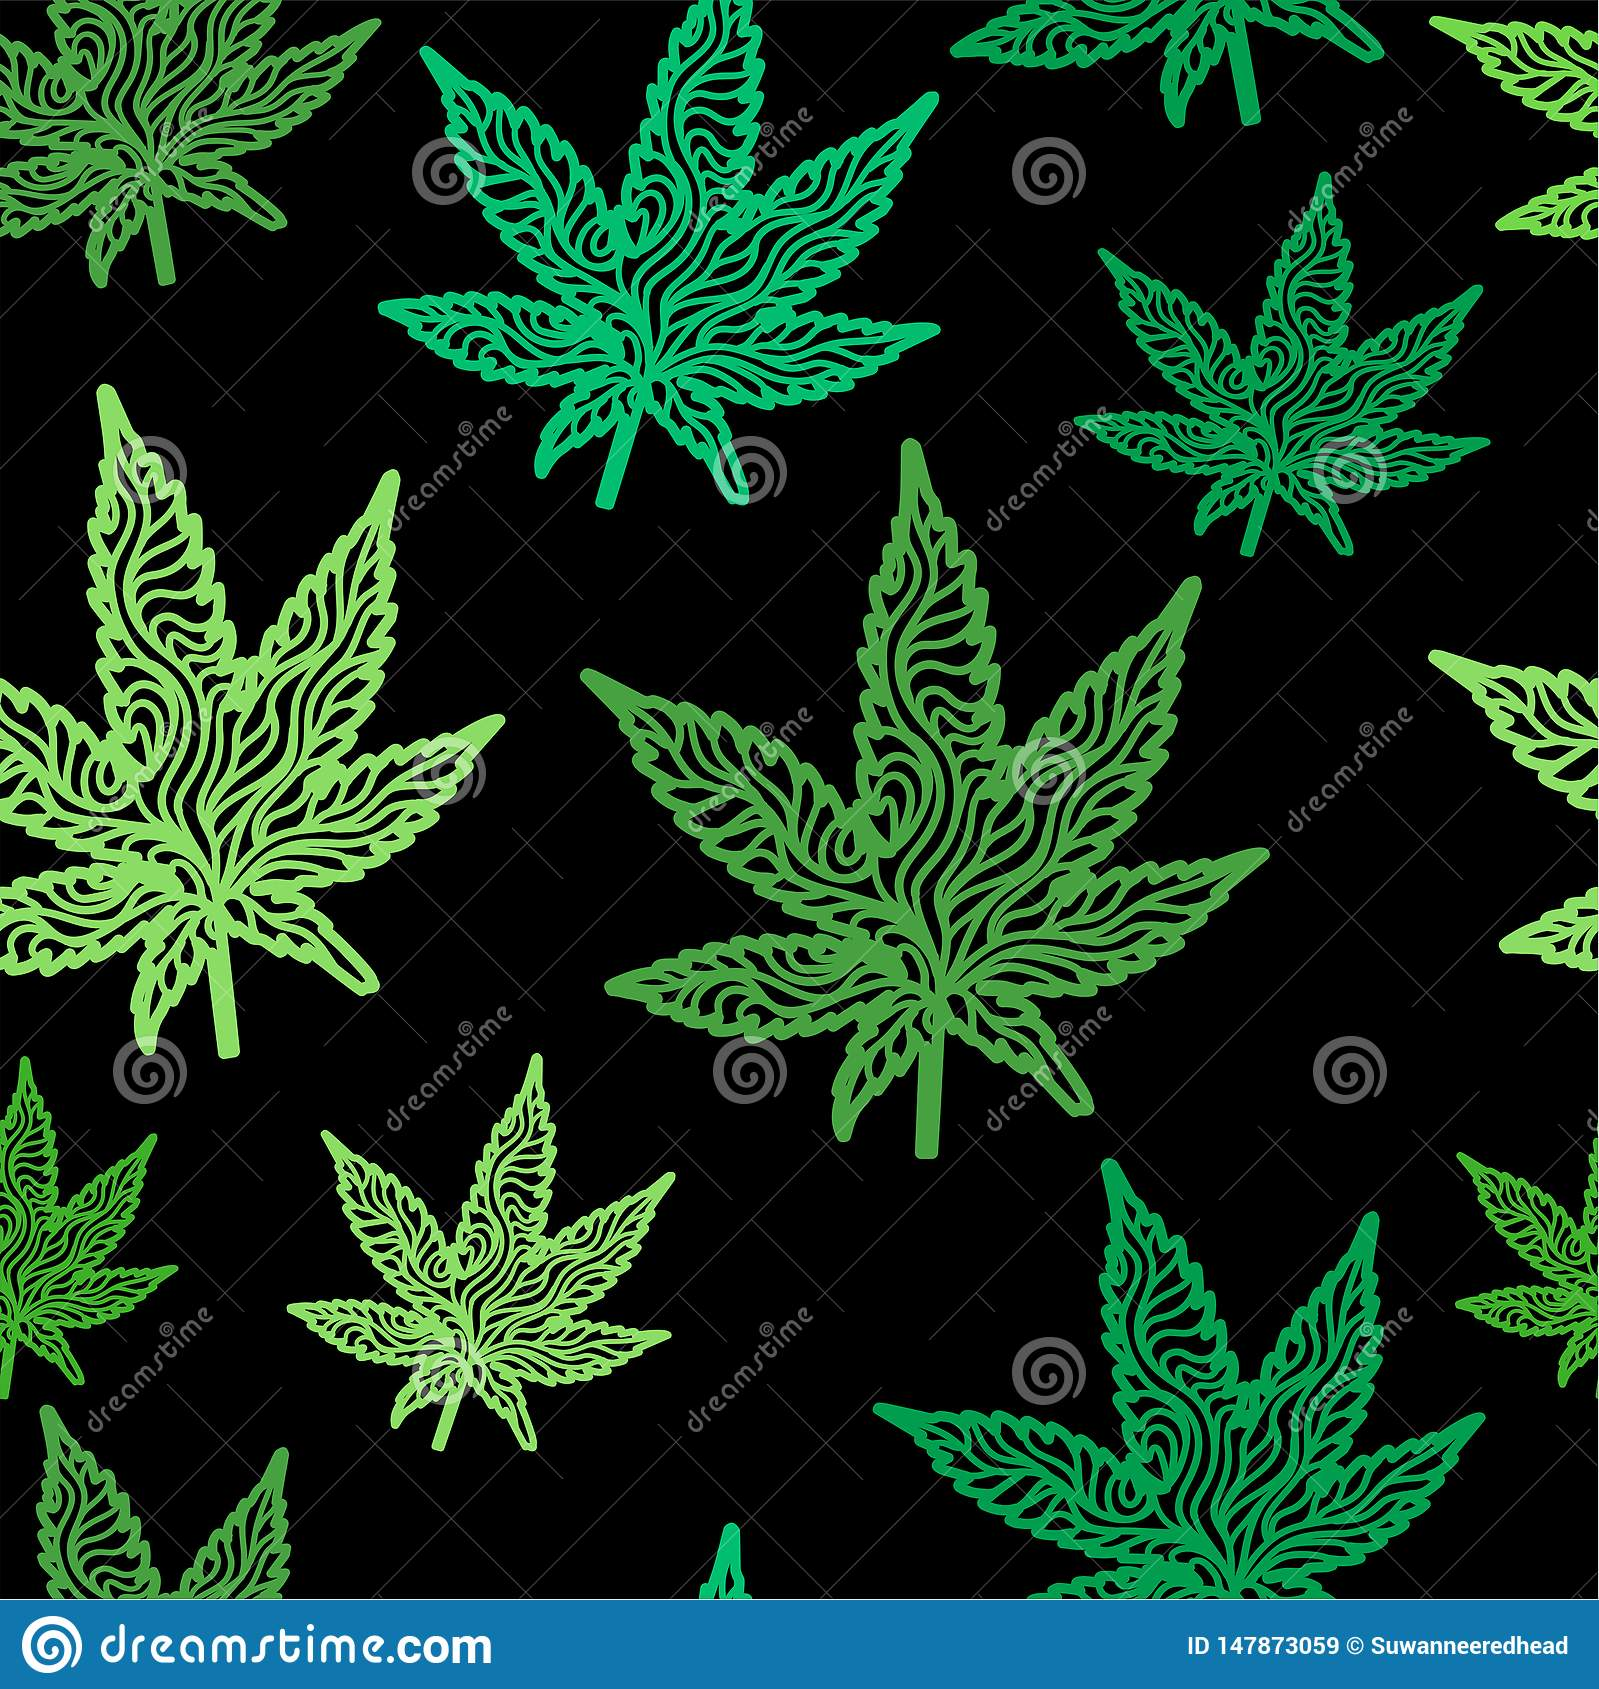 Green Zen Cannabis Leaf Seamless Pattern Stock Vector Illustration Of Relaxation Recreational 147873059